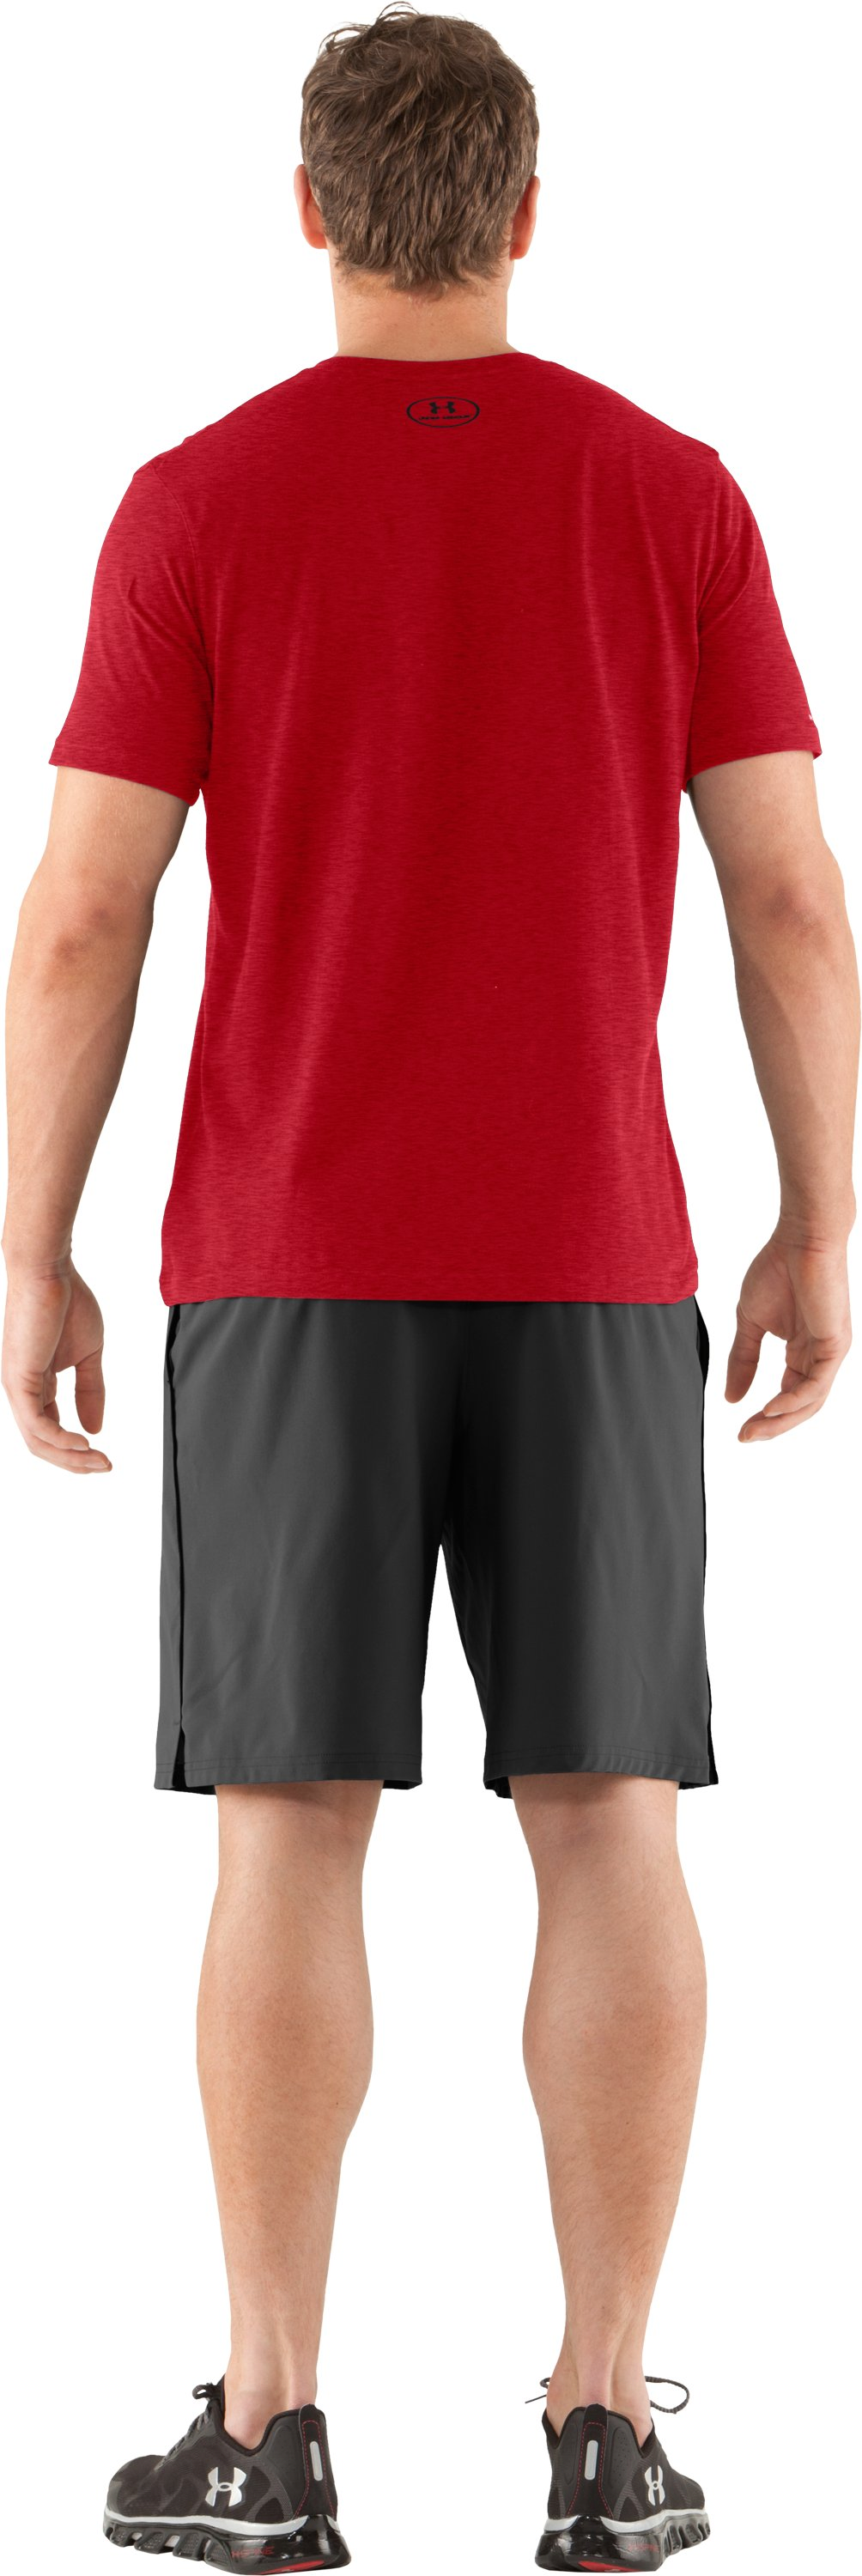 Men's Charged Cotton® T-Shirt, Red, Back